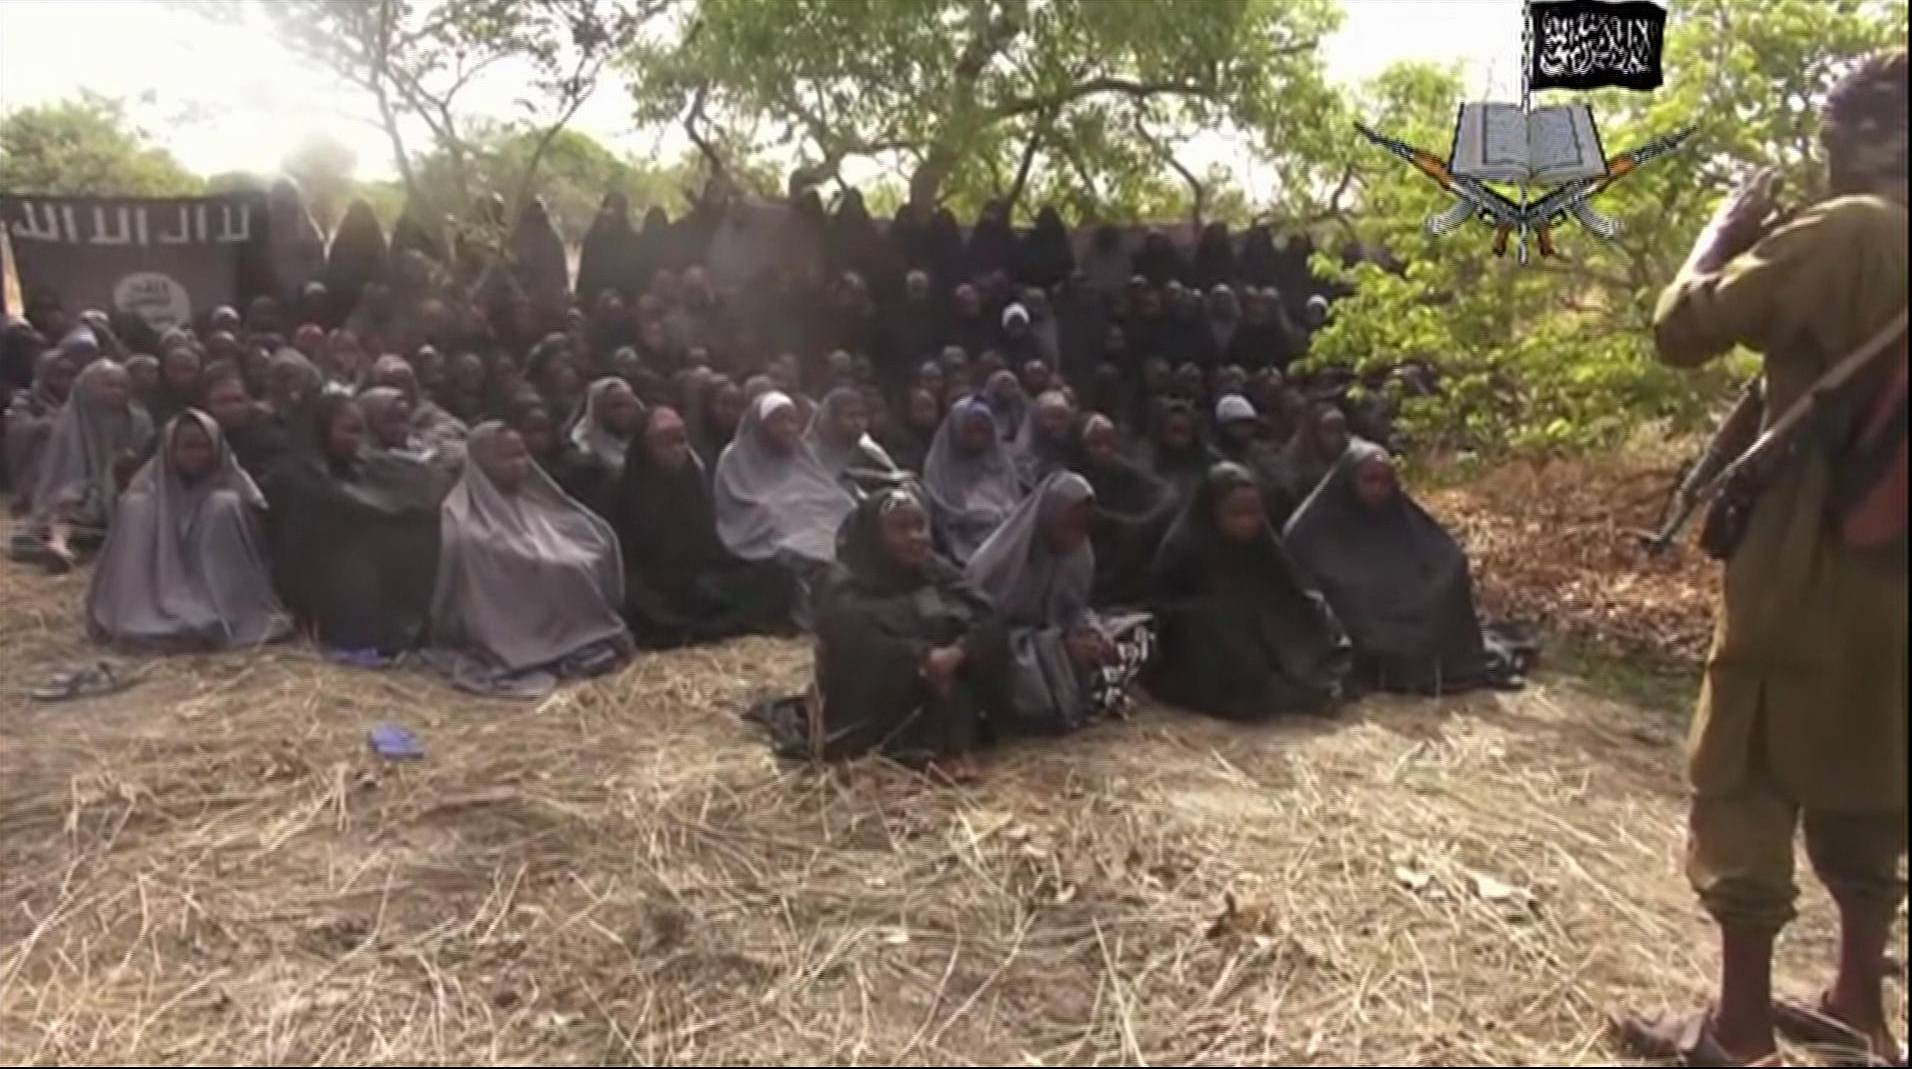 This photo, taken from a video by Nigeria's Boko Haram terrorist network, purports to show dozens of abducted schoolgirls, covered in jihab and praying in Arabic. It is the first public sight of the girls since more than 300 were kidnapped from a northeastern school the night of April 14 four weeks ago.